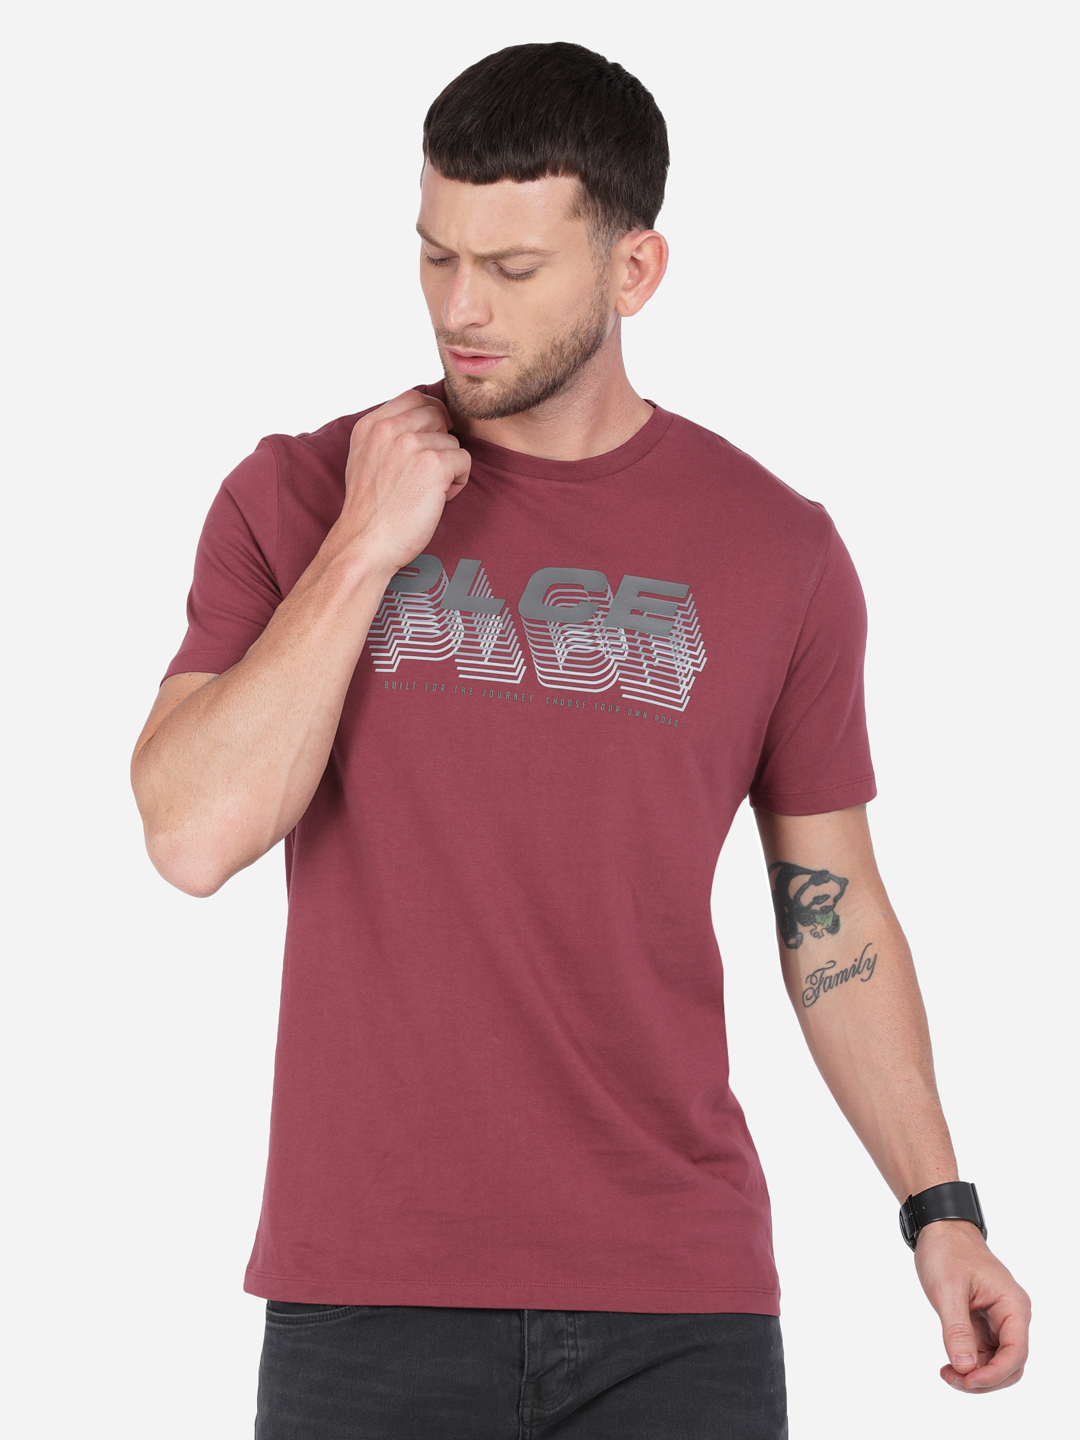 883 Police   883 Police Layer T-shirt